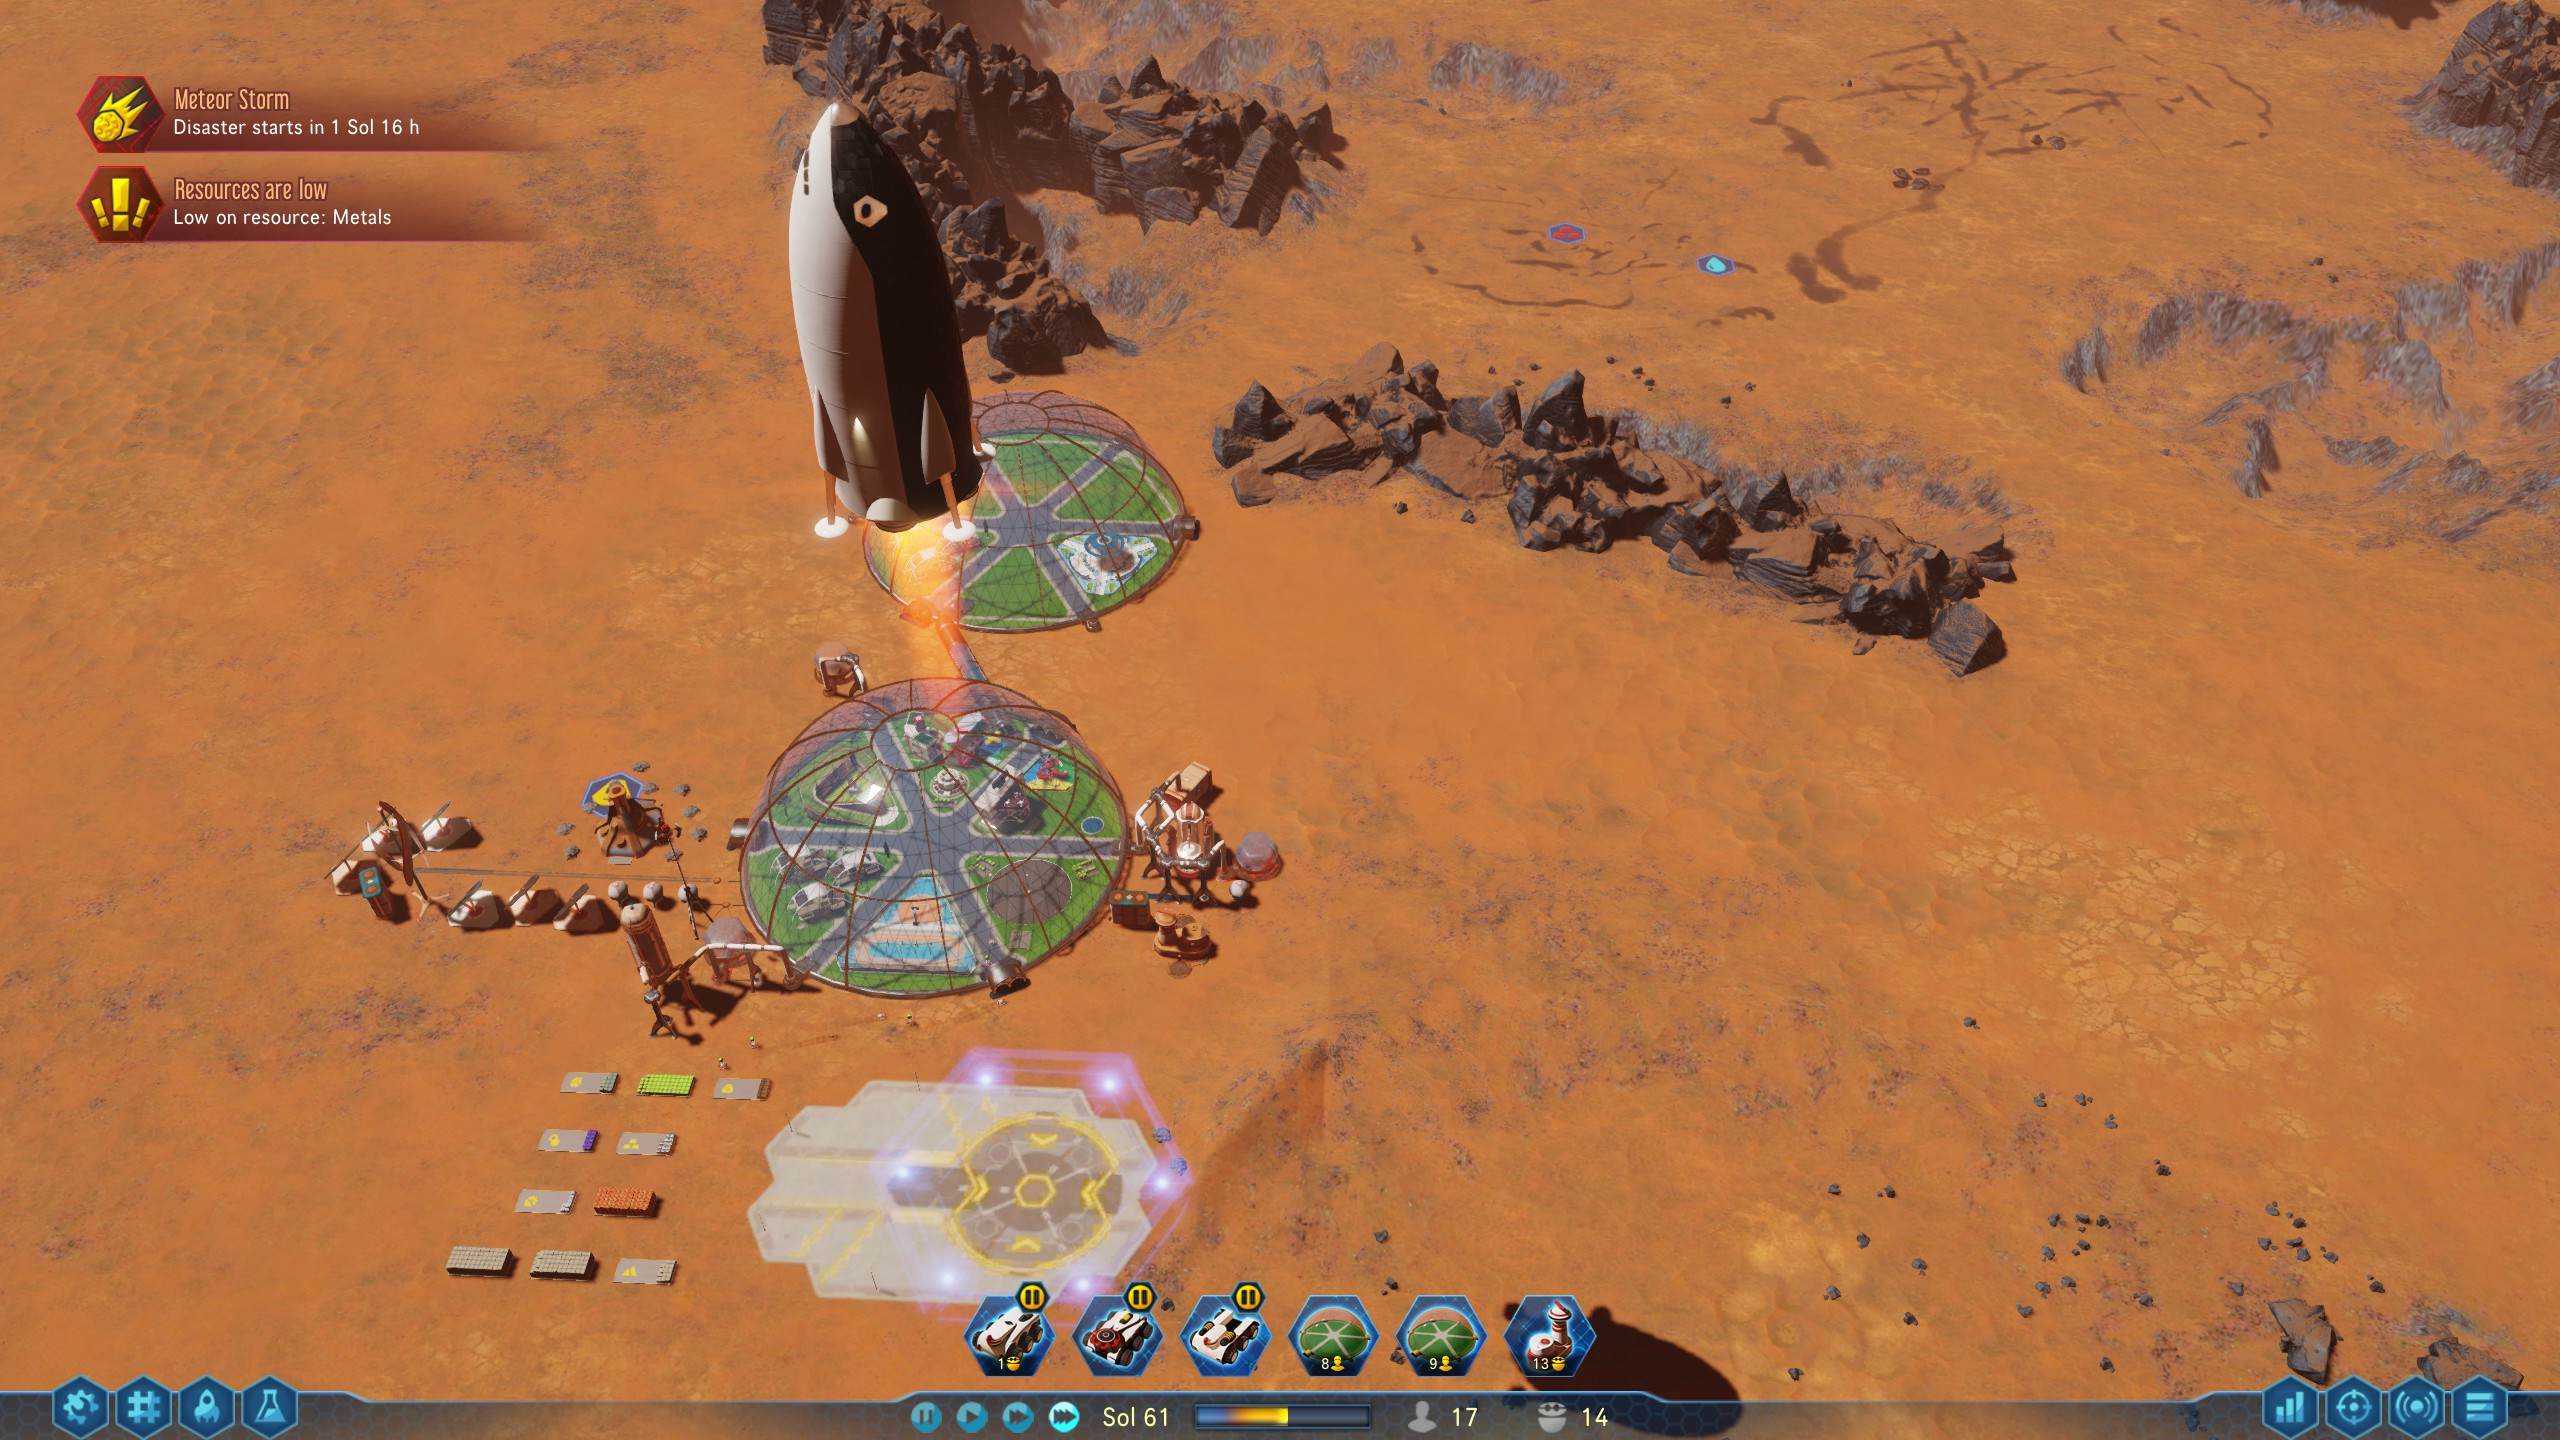 Steam Community Screenshot Really Cool Game For Science Nerds